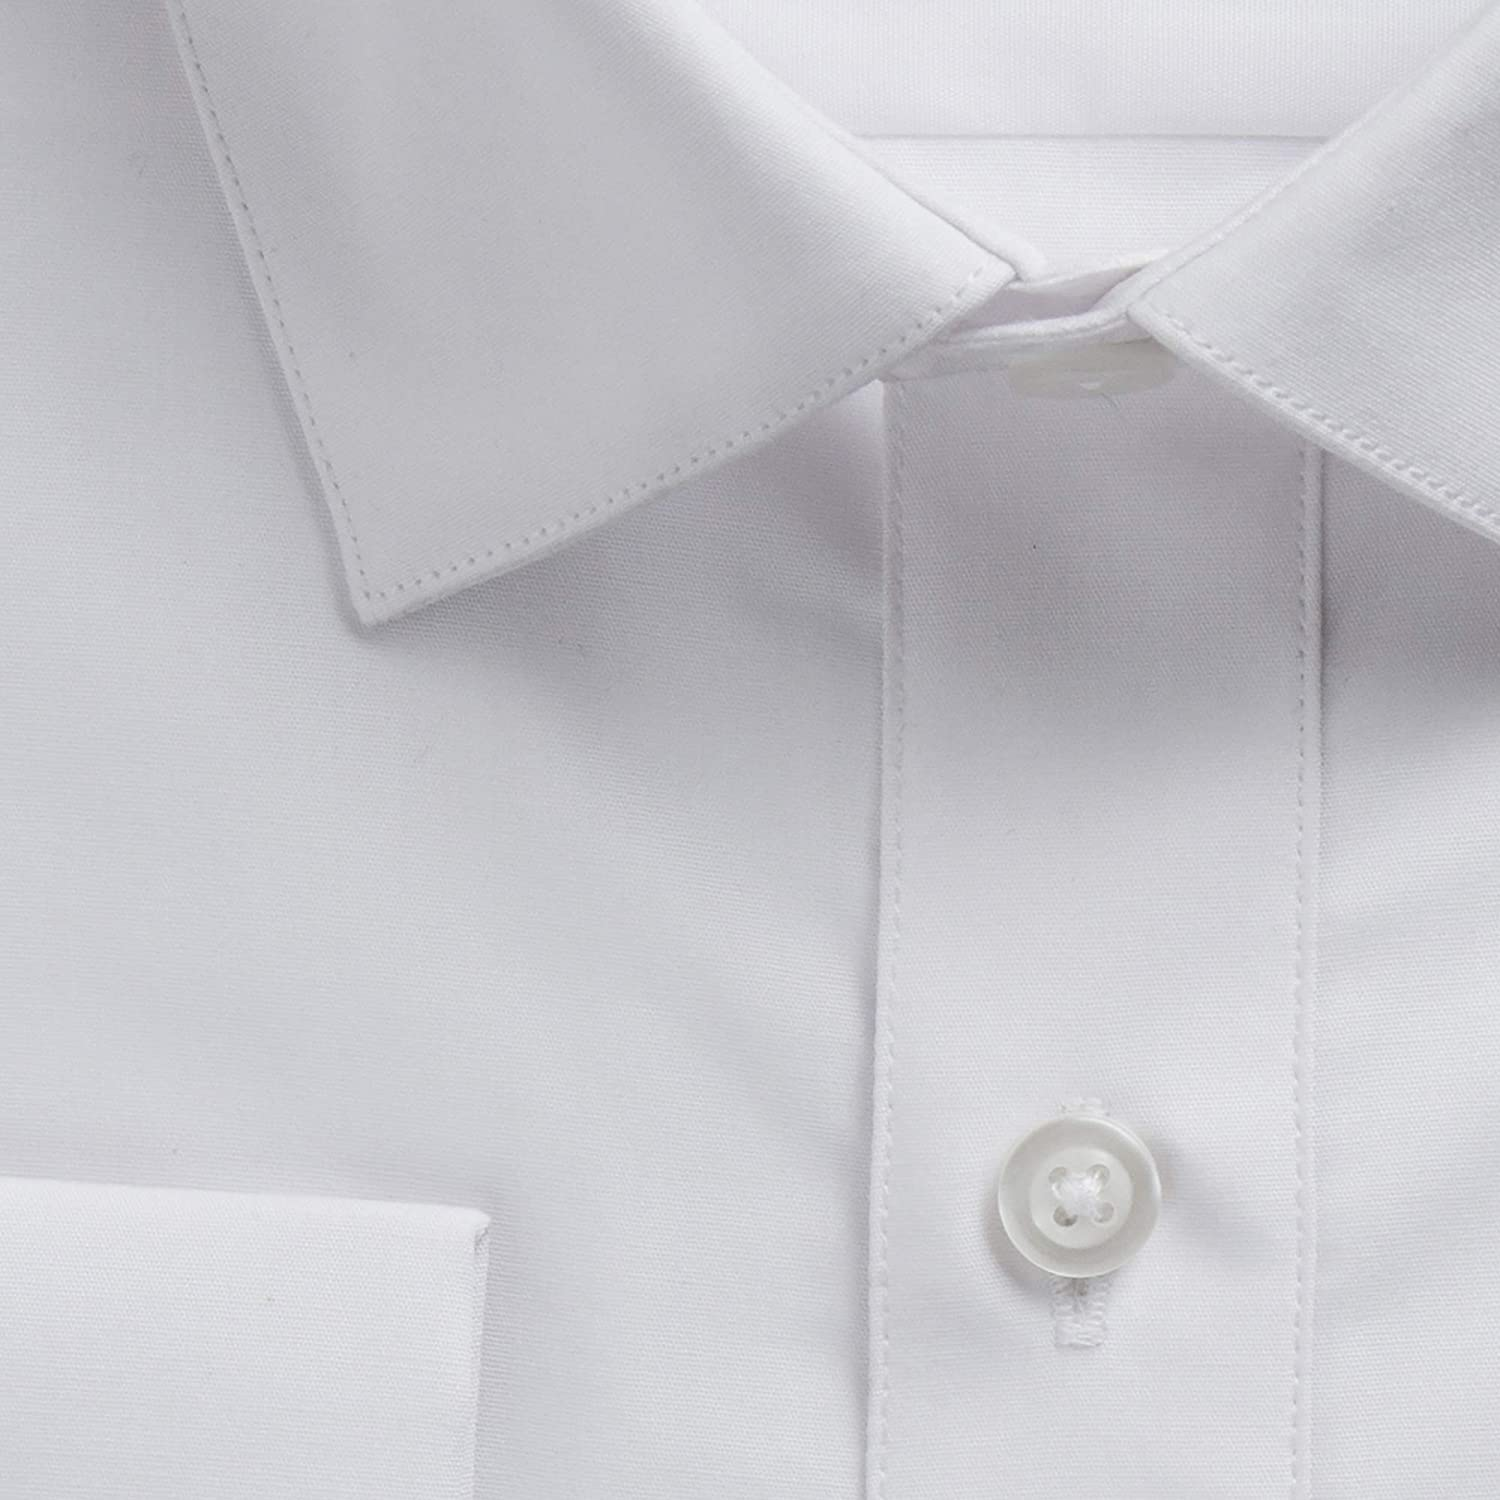 Gentlemens Collection Mens Regular /& Slim Fit French Cuff Solid Dress Shirt Colors Cufflink Included